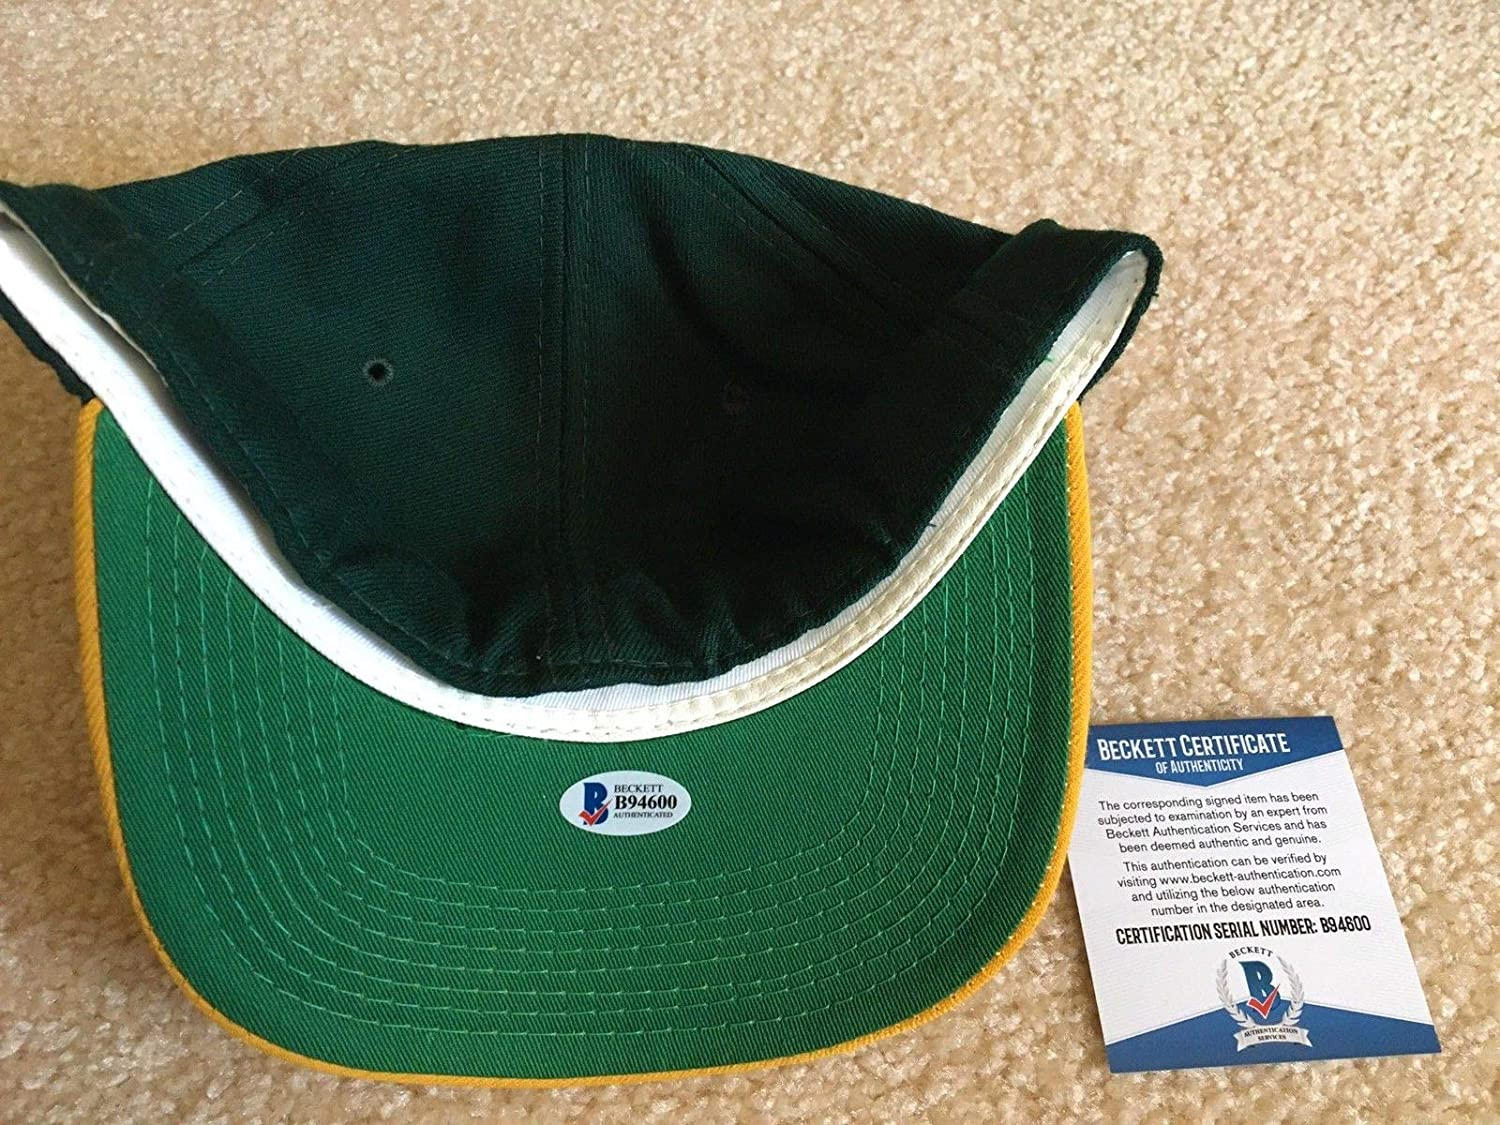 b2b8a3b5 Ray Nitschke Autographed Signed Green Bay Packers Hat Beckett ...